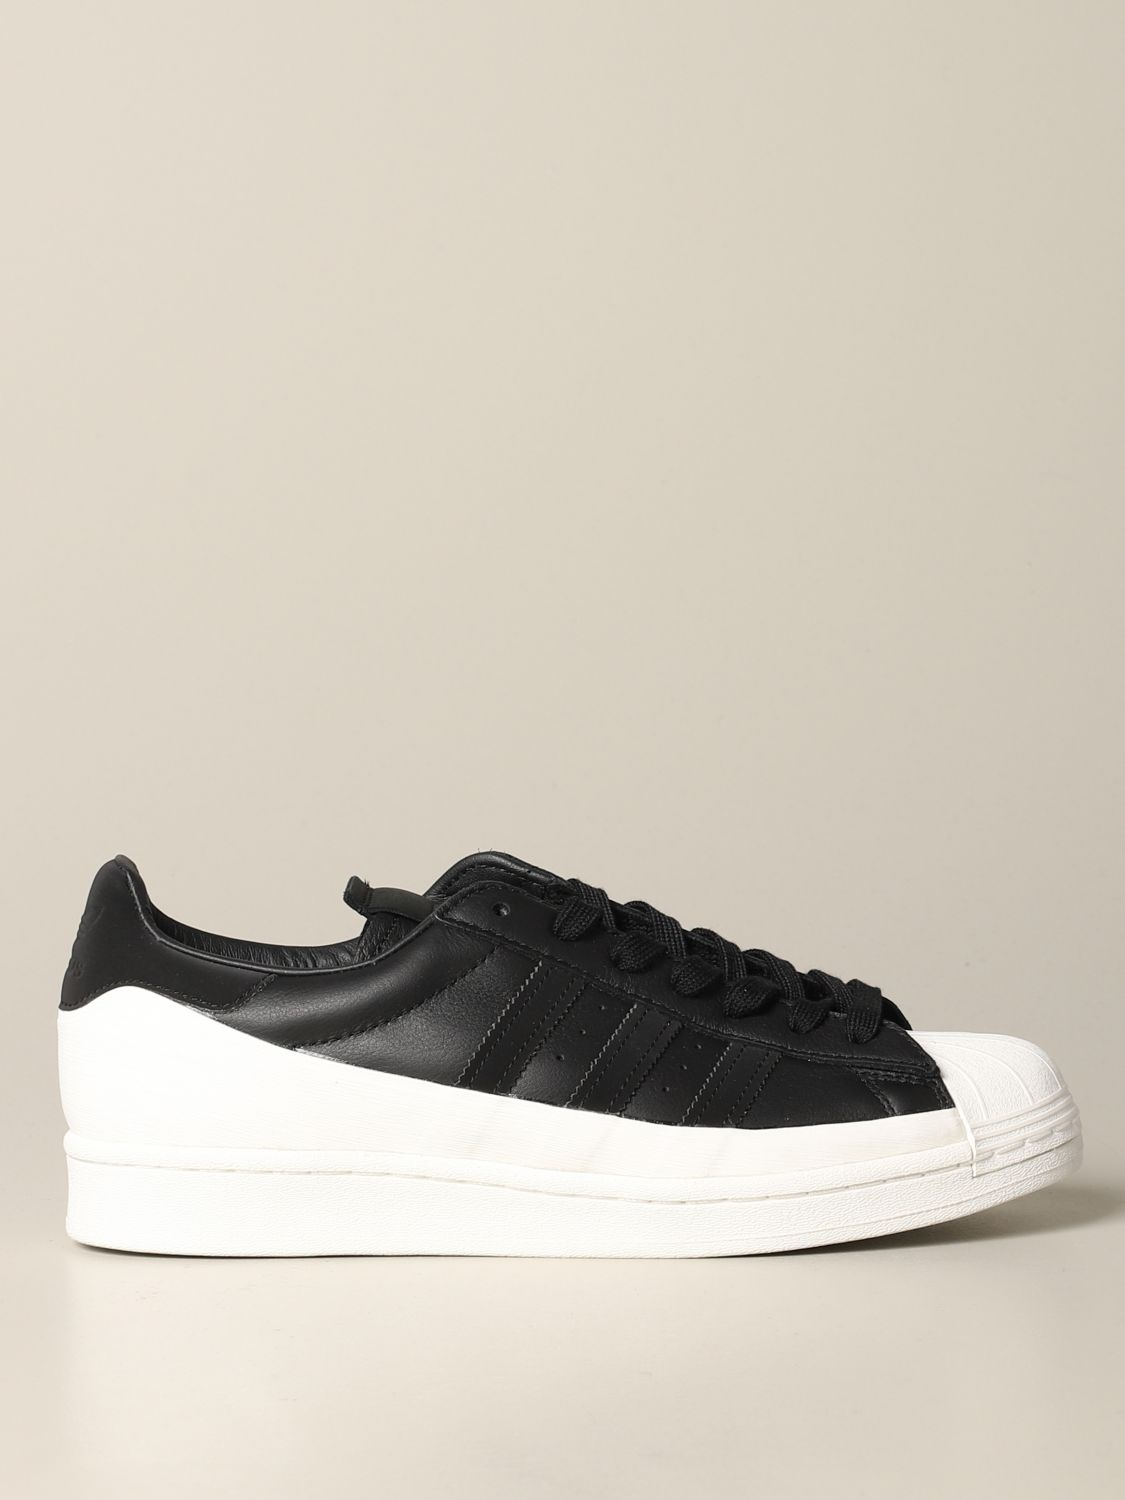 运动鞋 Adidas Originals: Adidas Originals Superstar logo 真皮运动鞋 黑色 1